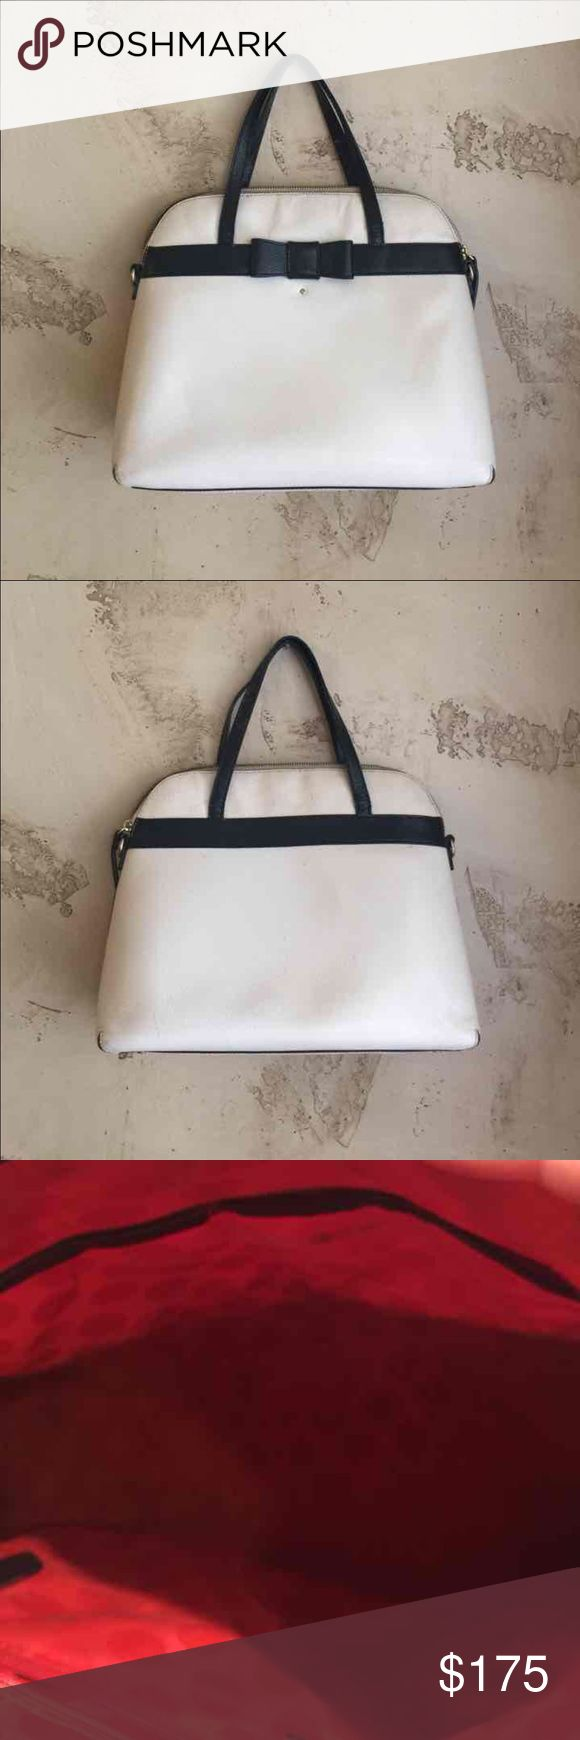 Kate Spade Kirk Park Maise Medium Handbag Reposh- bought on Posh however the seller neglected to mention that  she was a smoker😡. So the bag has remanence of cigarette smoke💨. I tried to cleaning out with a deodorizer  but I can't seem to get it out completely😞. There is a small hole in the lining of the bag which I'm sure is an easy fix.  The bag's lining has minor make up/pen marks Happy Poshing!   Open to trading reasonable offers will be considered kate spade Bags Satchels